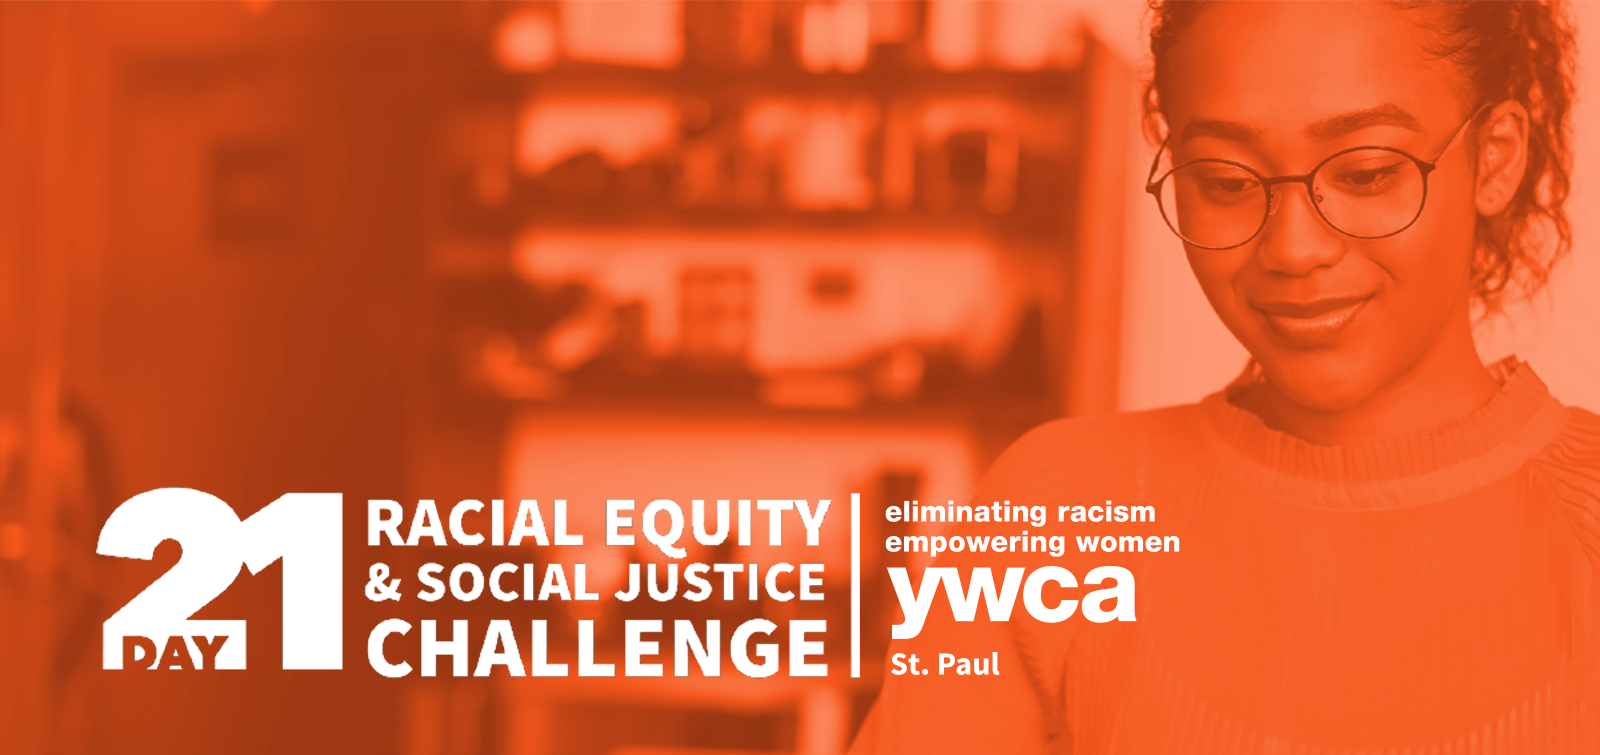 """""""21-Day Racial Equity & Social Justice Challenge"""" on an orange-tinted photo of a Black teen girl with a peaceful expression"""